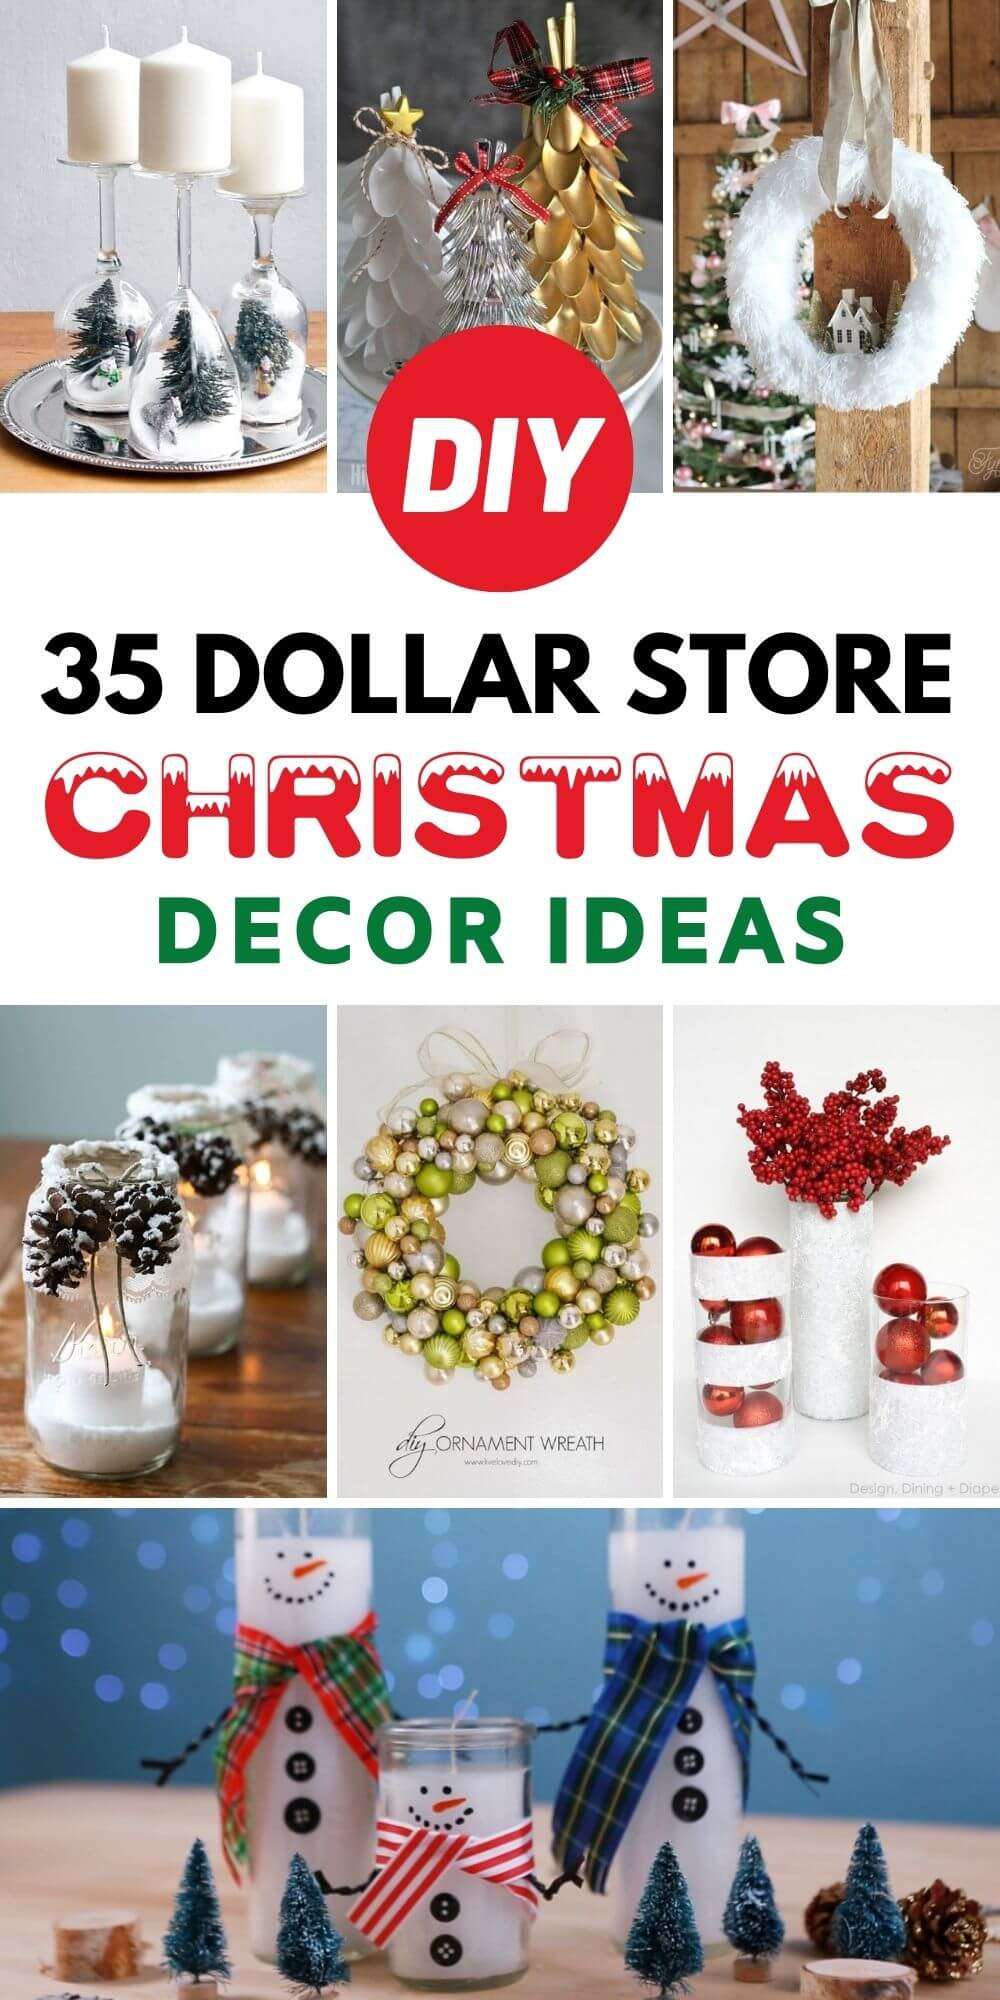 35 DIY Dollar Store Christmas Decor Ideas